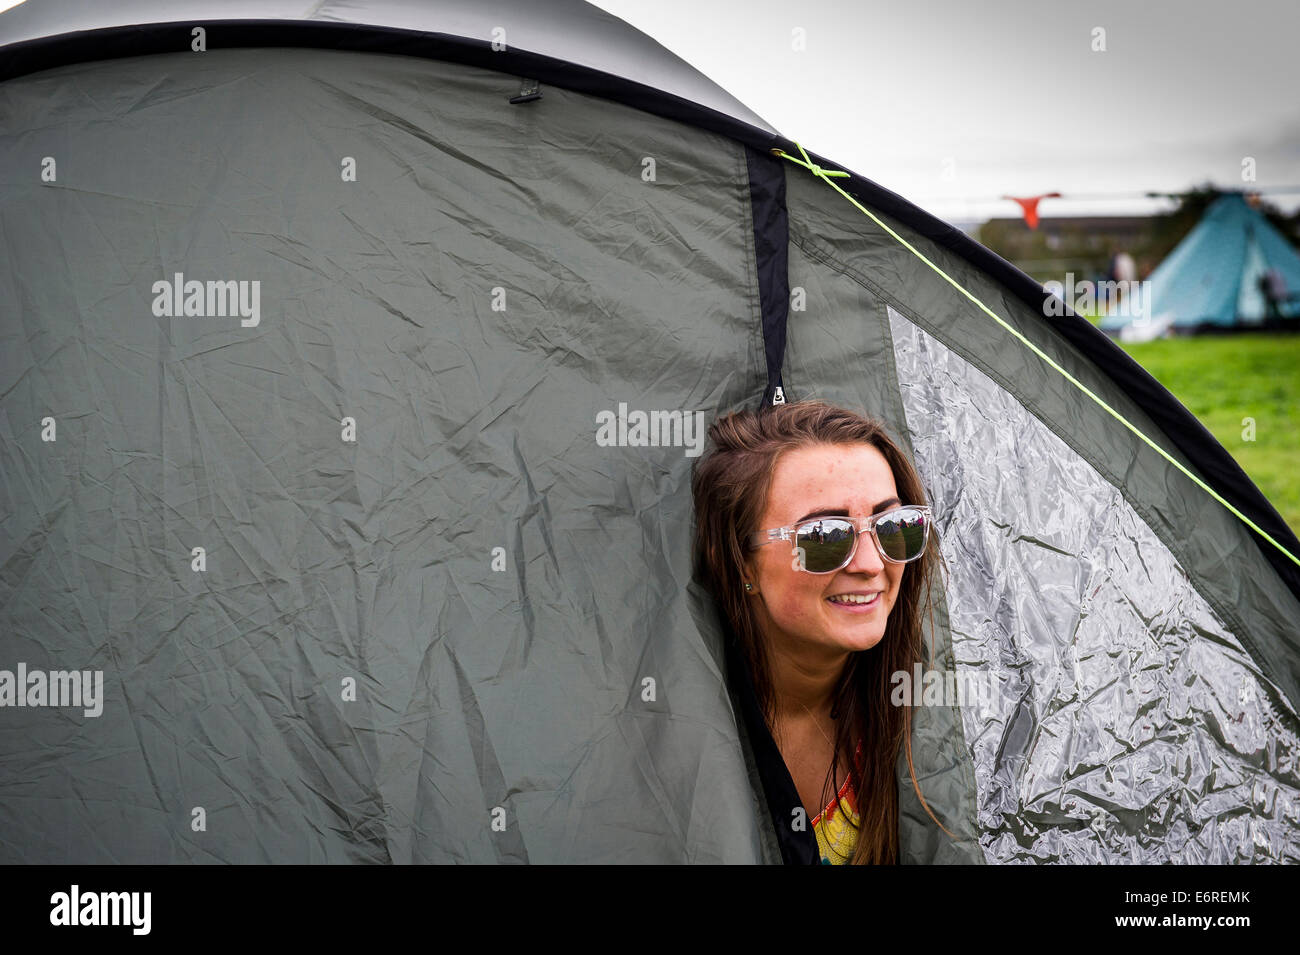 Stow Maries, UK. 29th August 2014. A young female festivalgoer peeps out of her tent at the Brownstock festival. Stock Photo